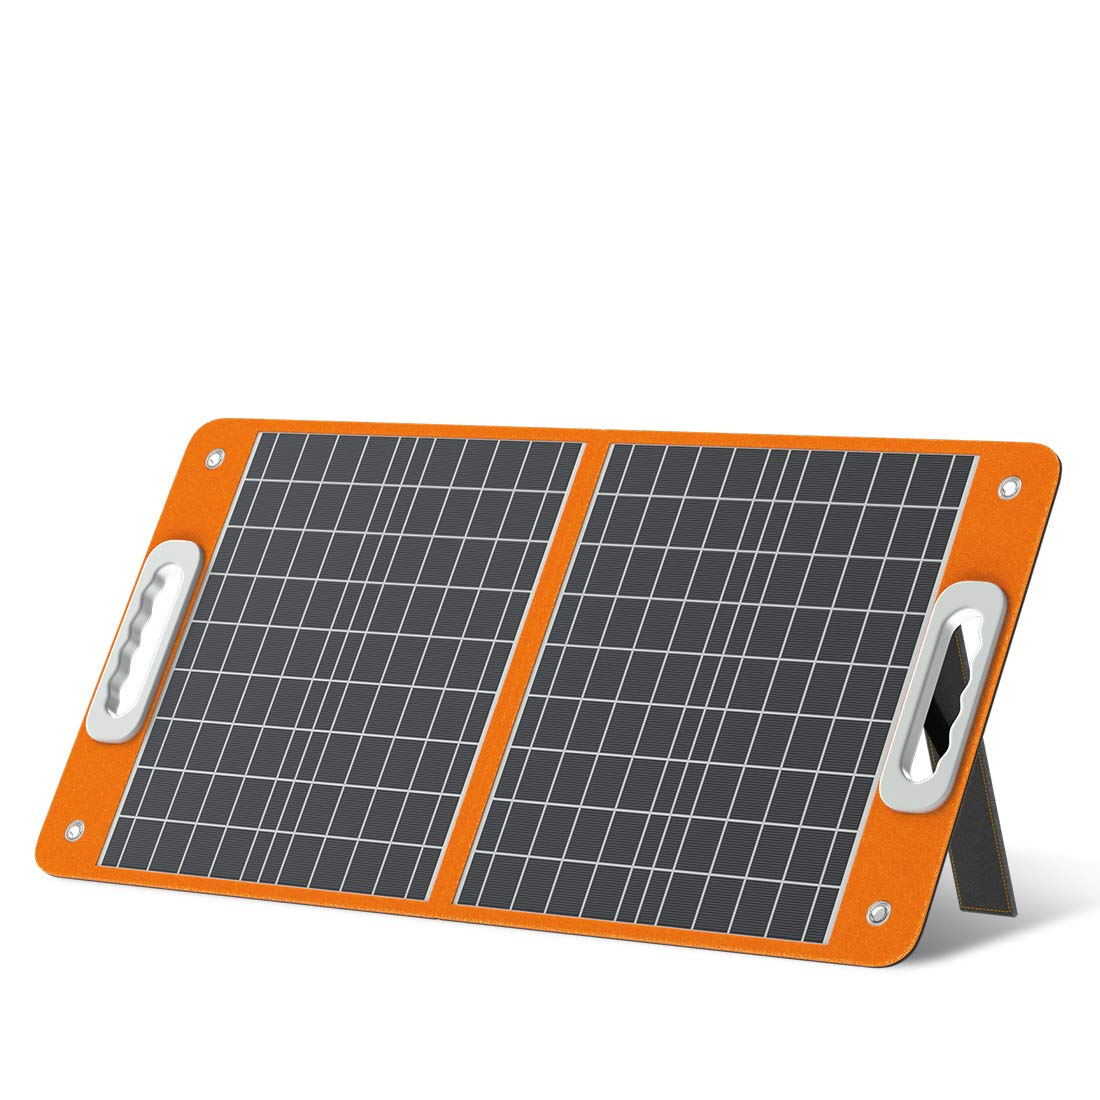 Solar panel for camping heater